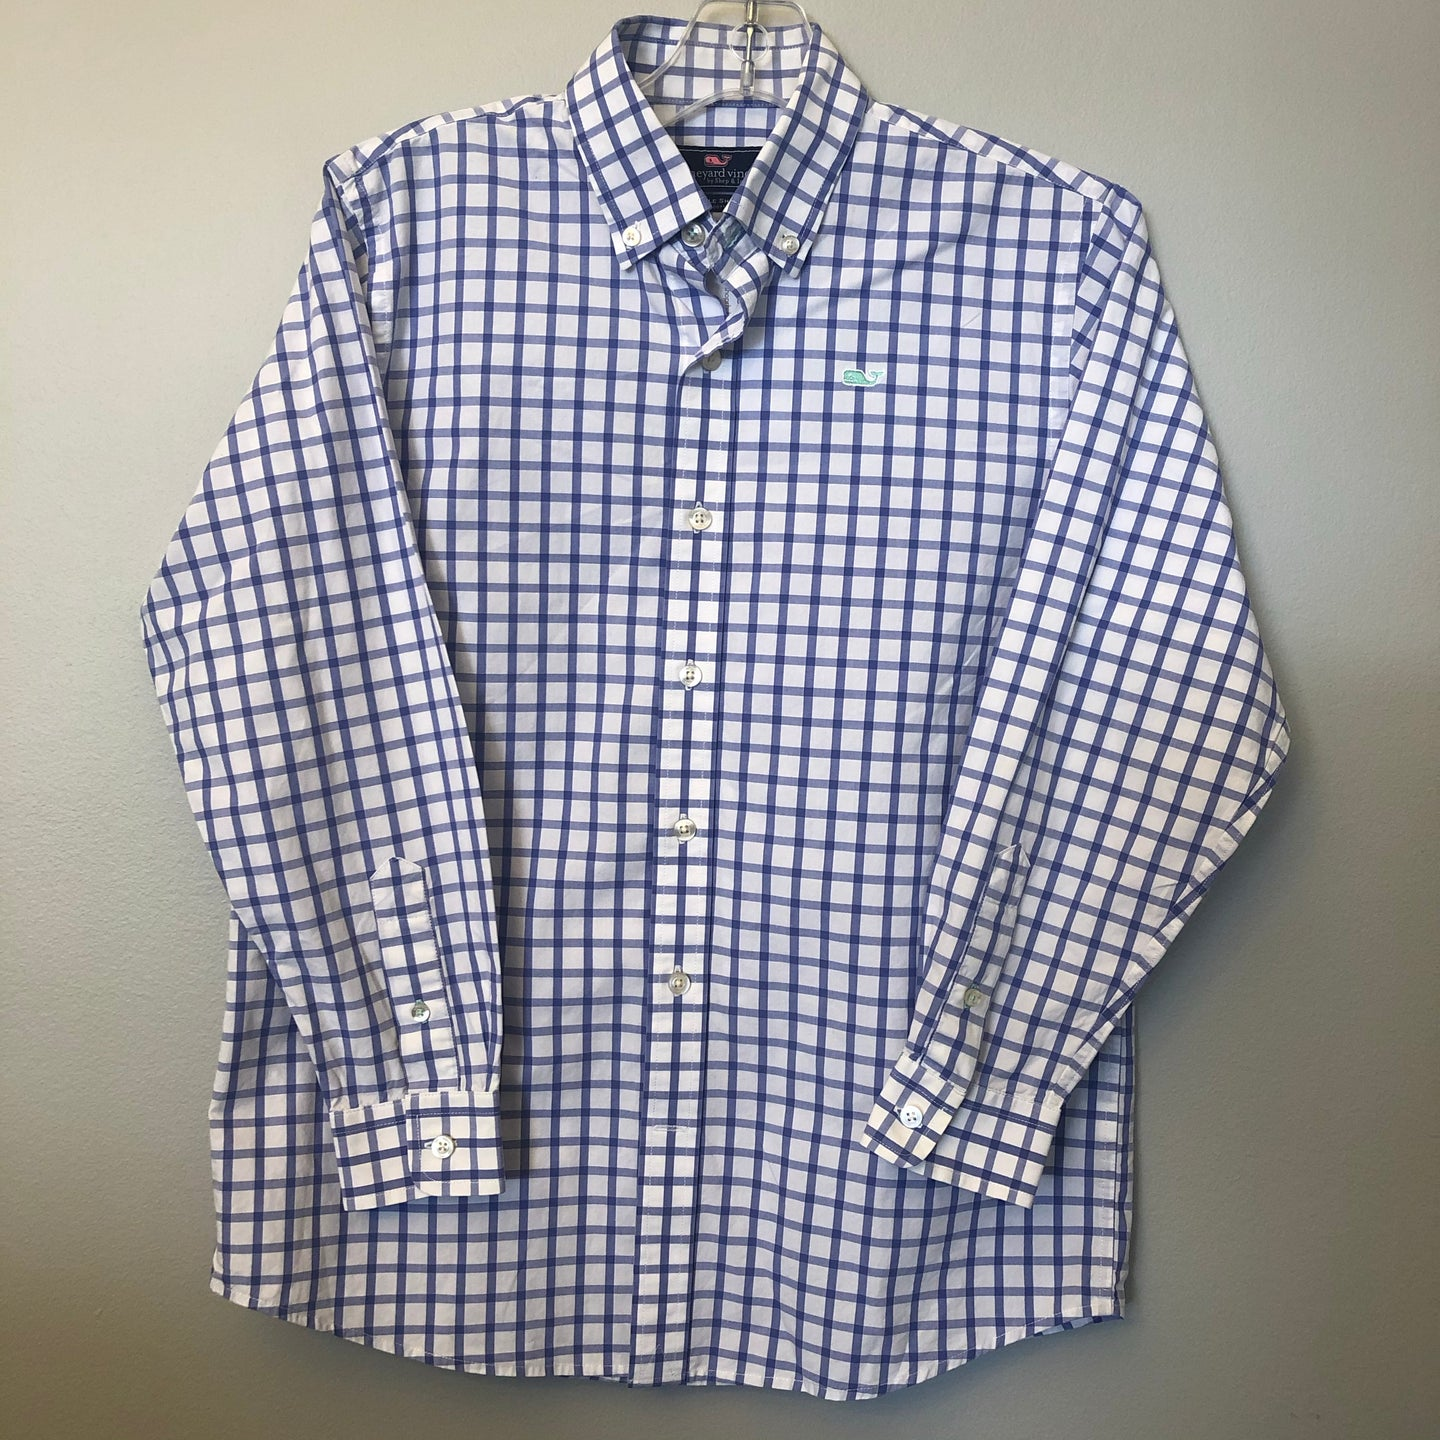 Vineyard Vines Whale Shirt Button Down Size 12-14